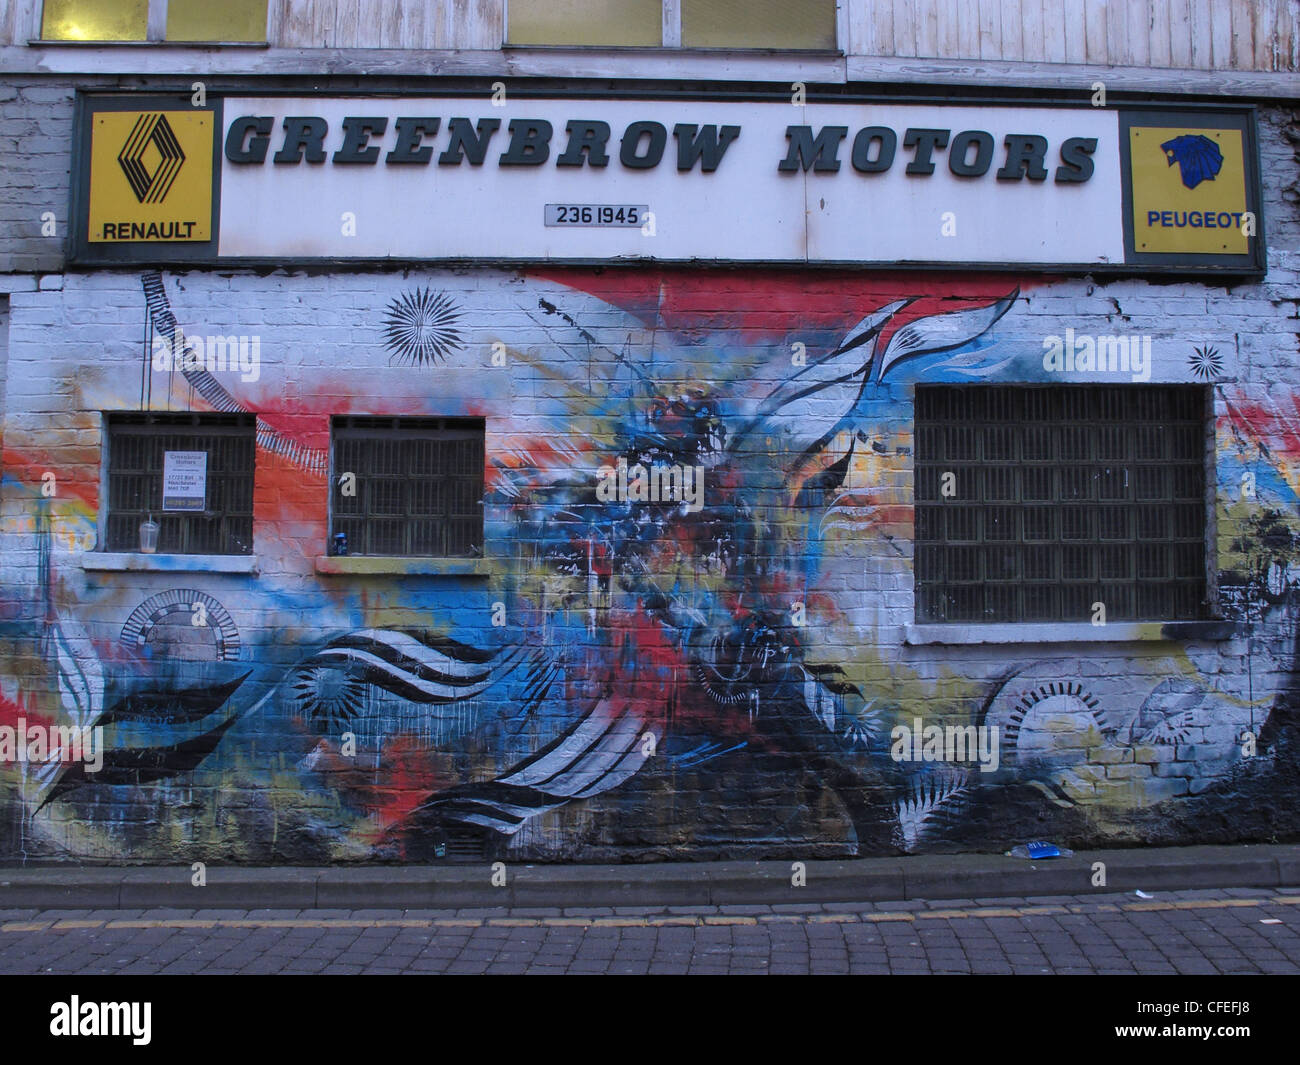 Inner,city,Manchester,graffiti,at,Greenbow,Motors,51,New,Wakefield,St,England,Lancashire,back,street,backstreet,seedy,shady,gotonysmith,near,oxford,rd,road,bars,french,car,repair,repairs,Renault,Peugeot,gostonysmith,Buy Pictures of,Buy Images Of